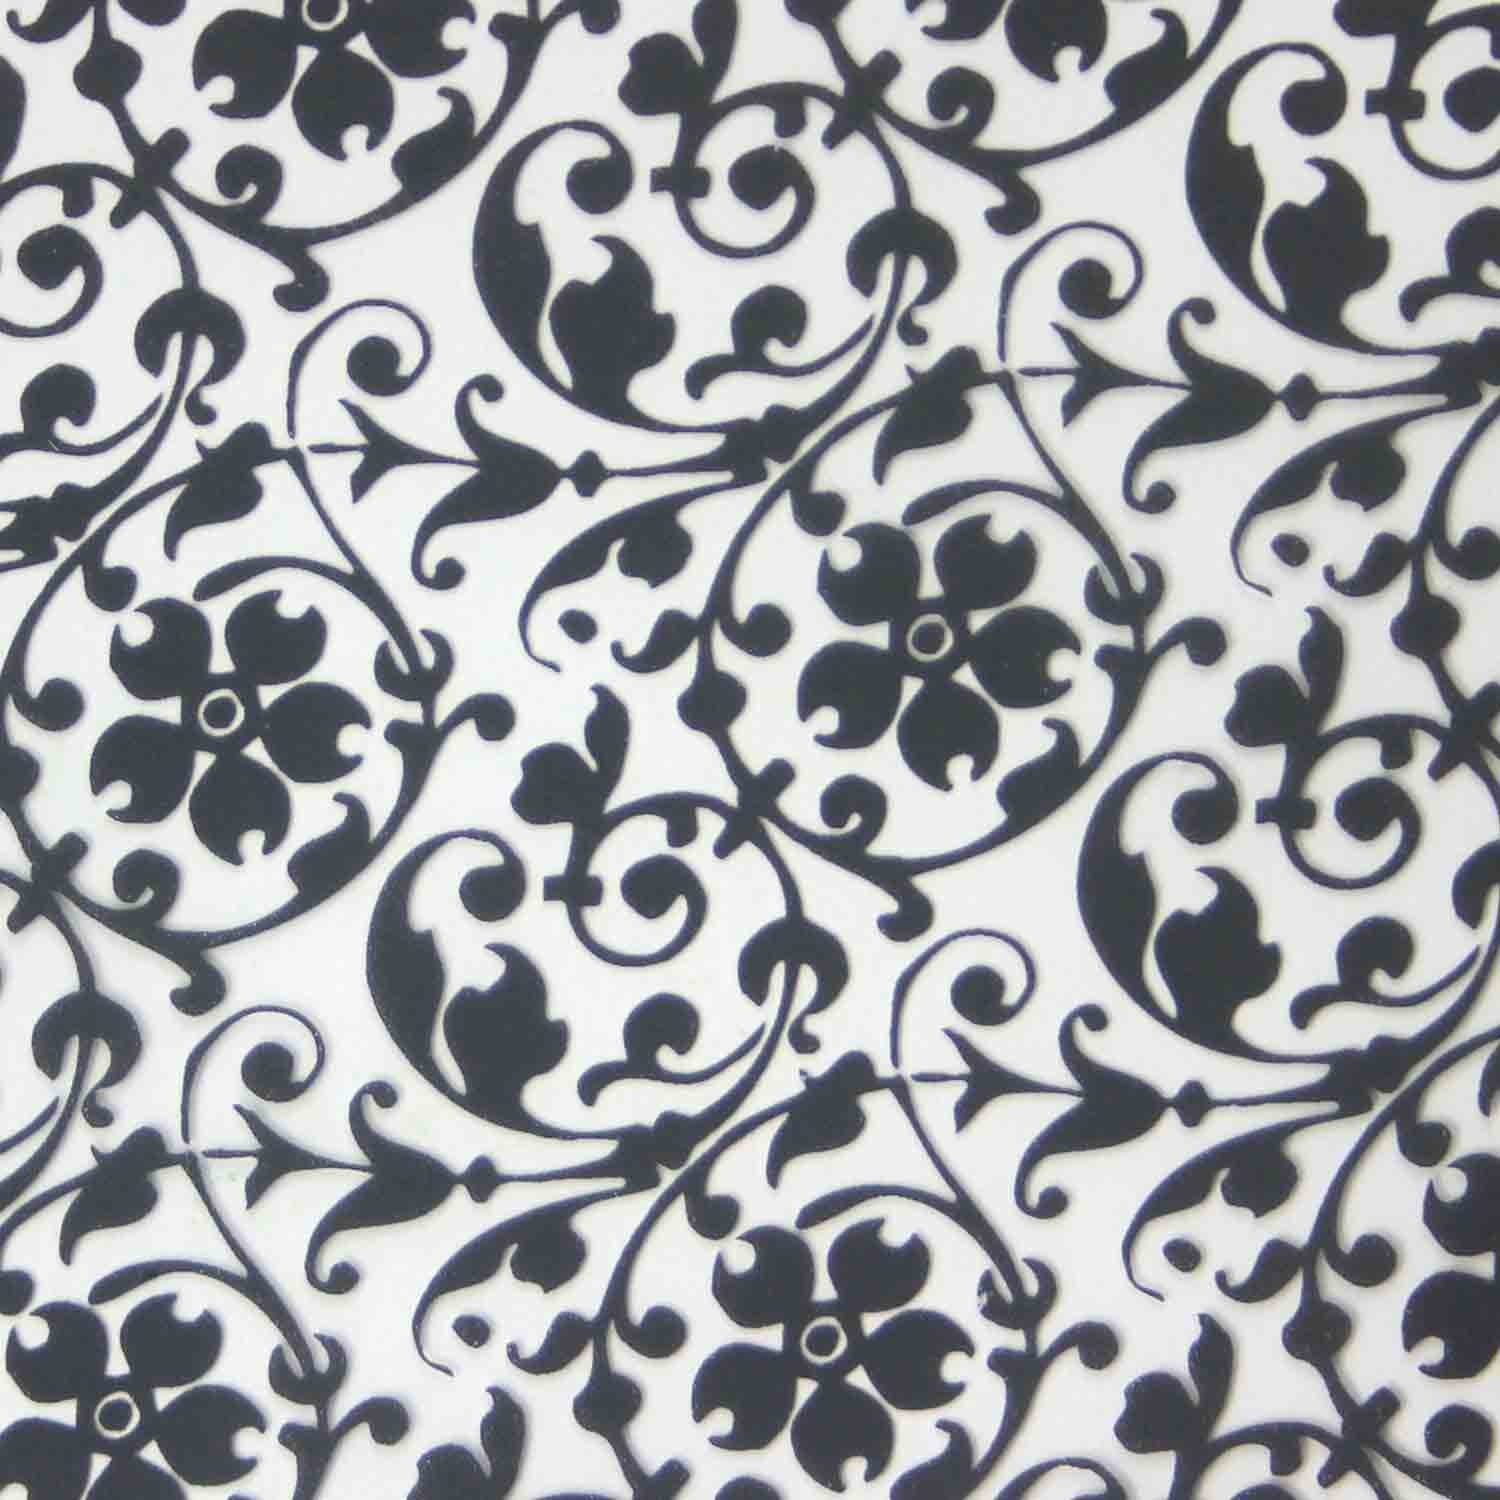 Chocolate Transfer Sheet - Black Floral Scroll